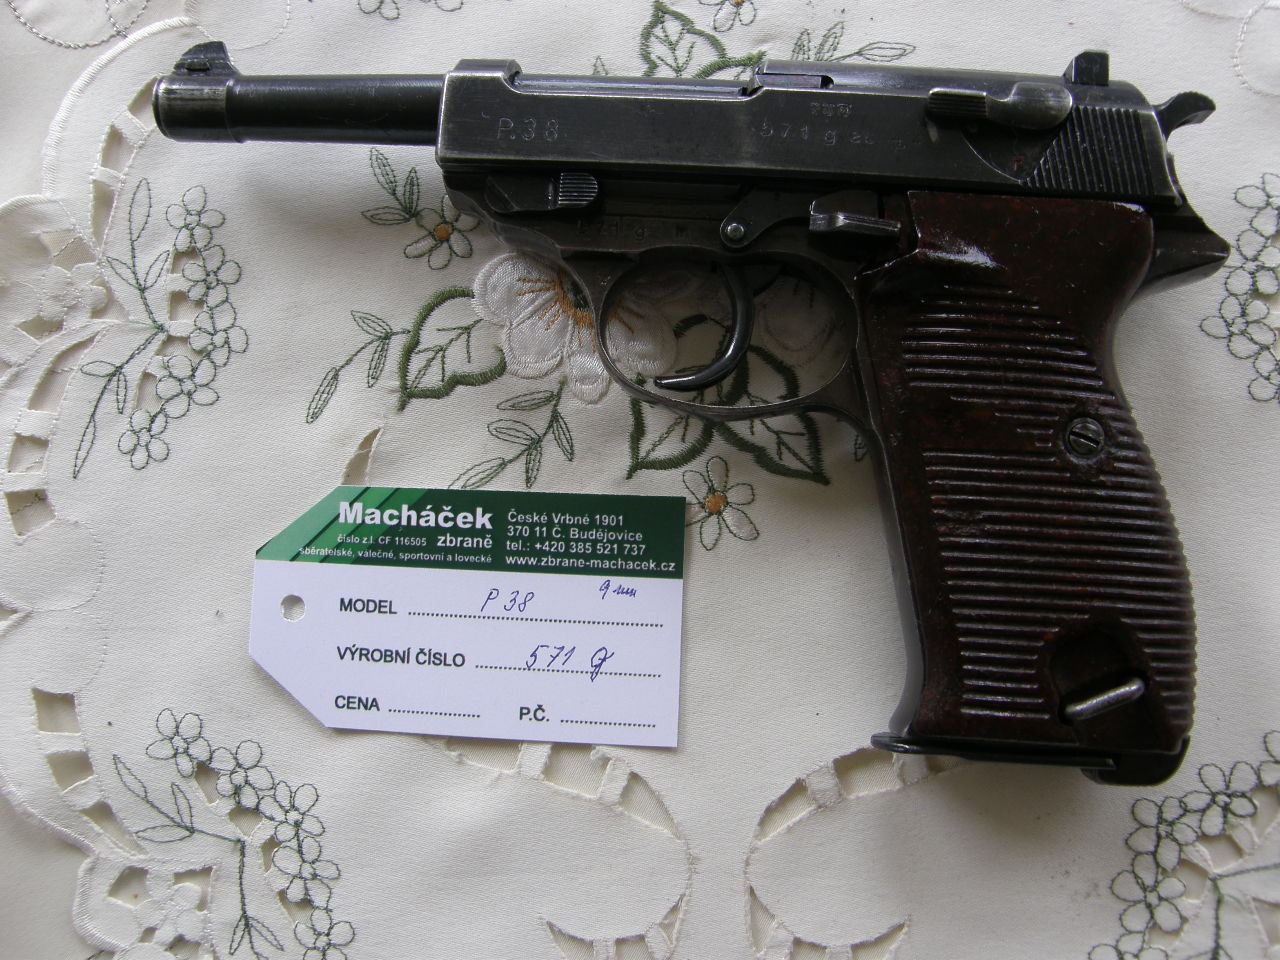 Pistole P 38 Walther v.č. 517 g r. 9 mm Luger